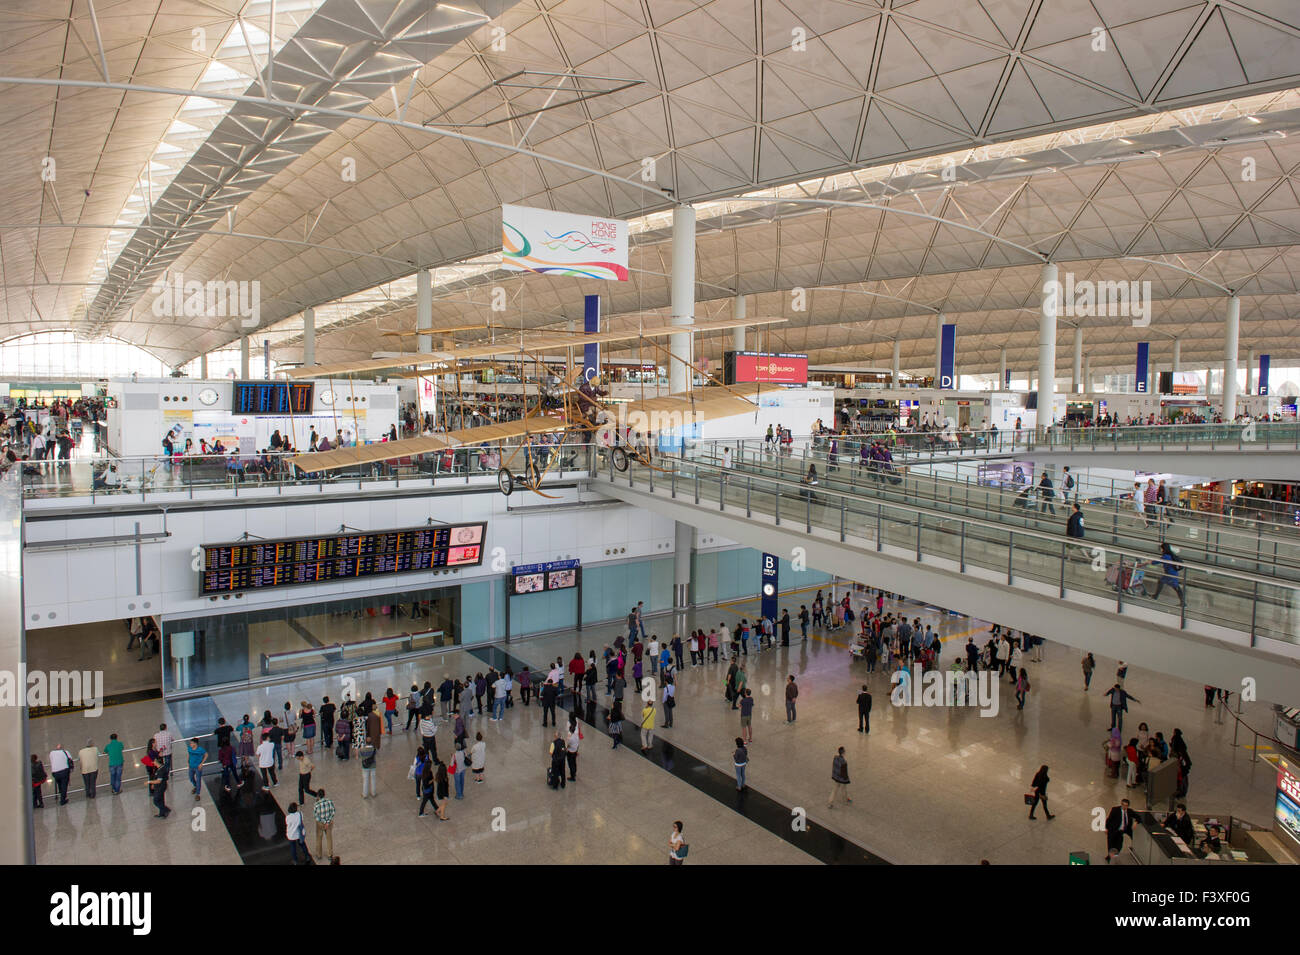 Hong Kong International airport. Stock Photo